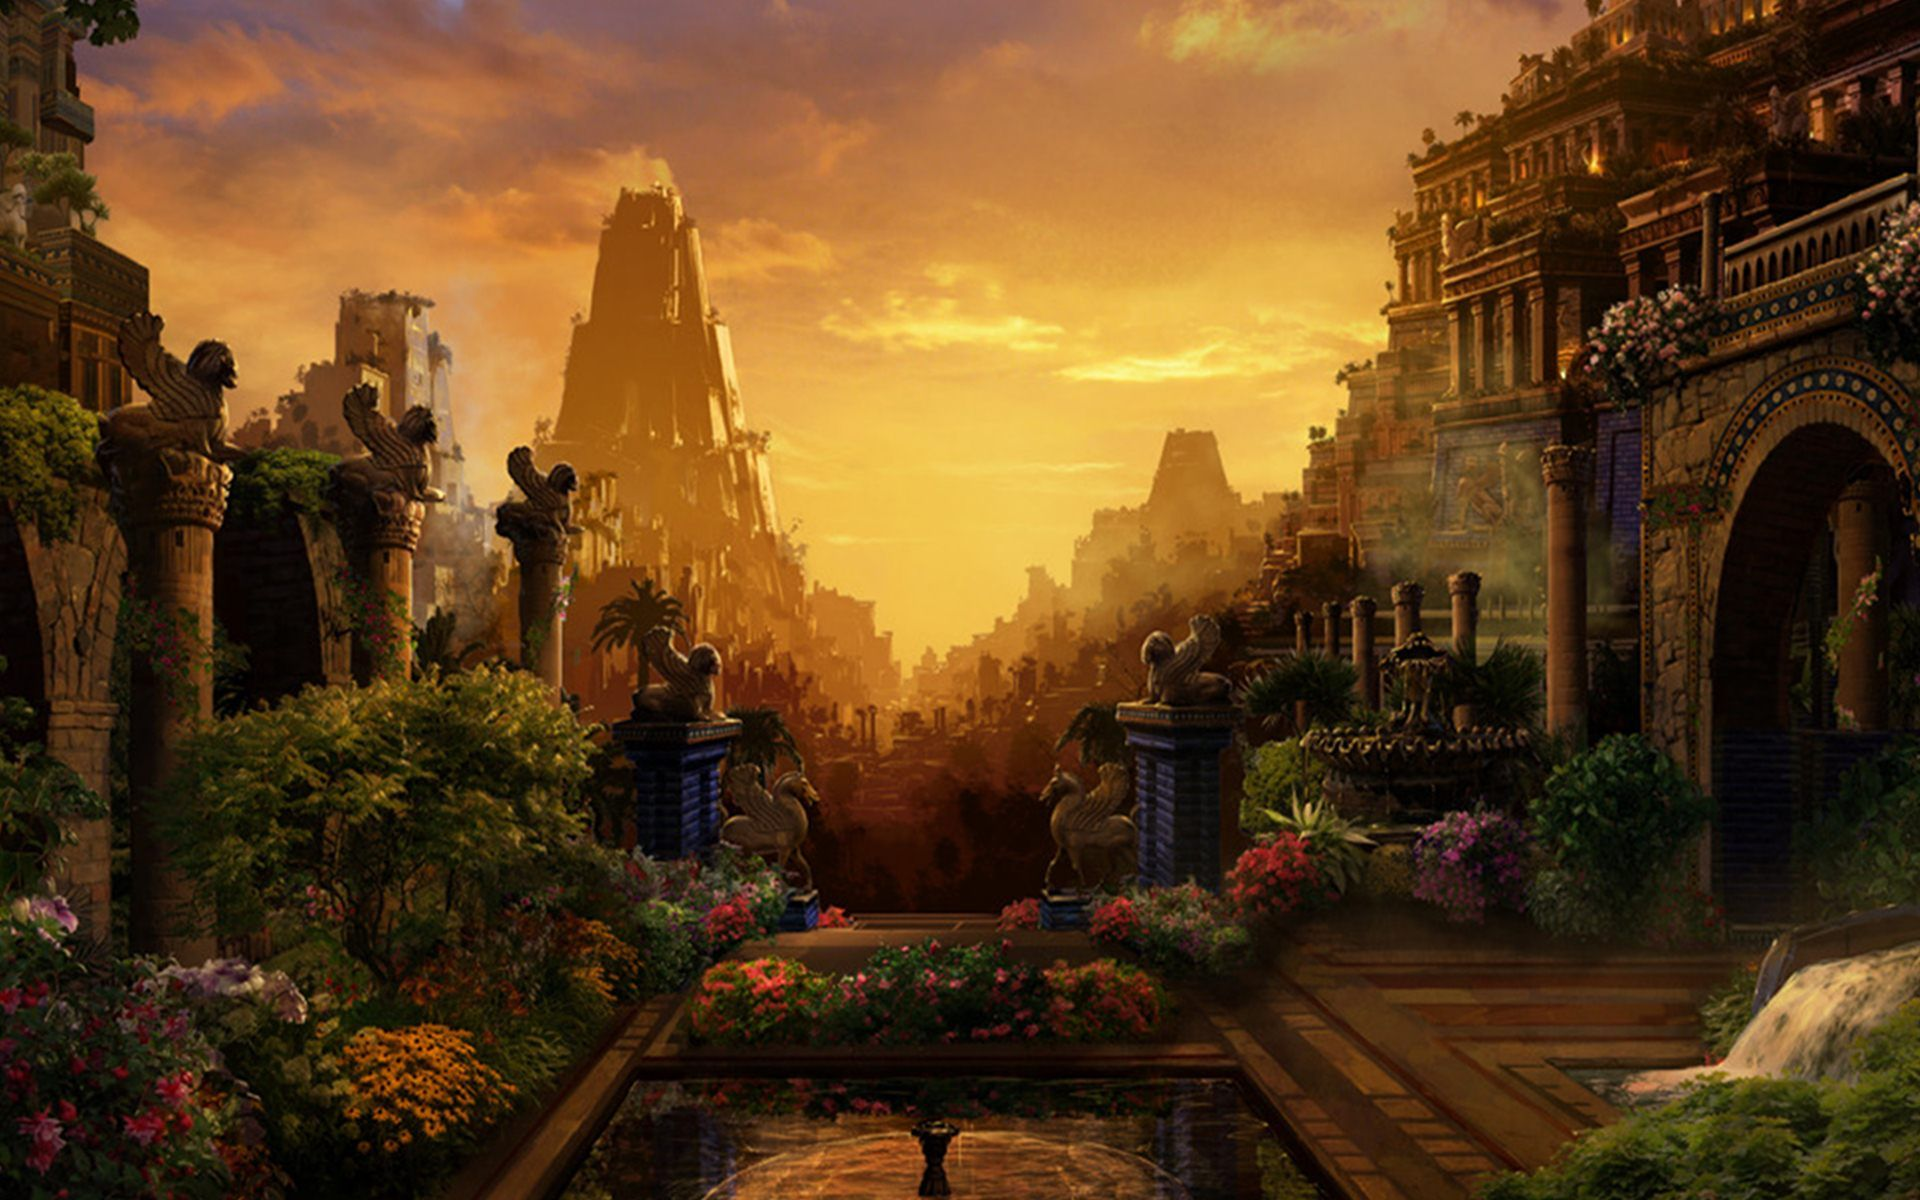 Hanging Gardens Of Babylon | Ancient World~ | Pinterest | Gardens ...